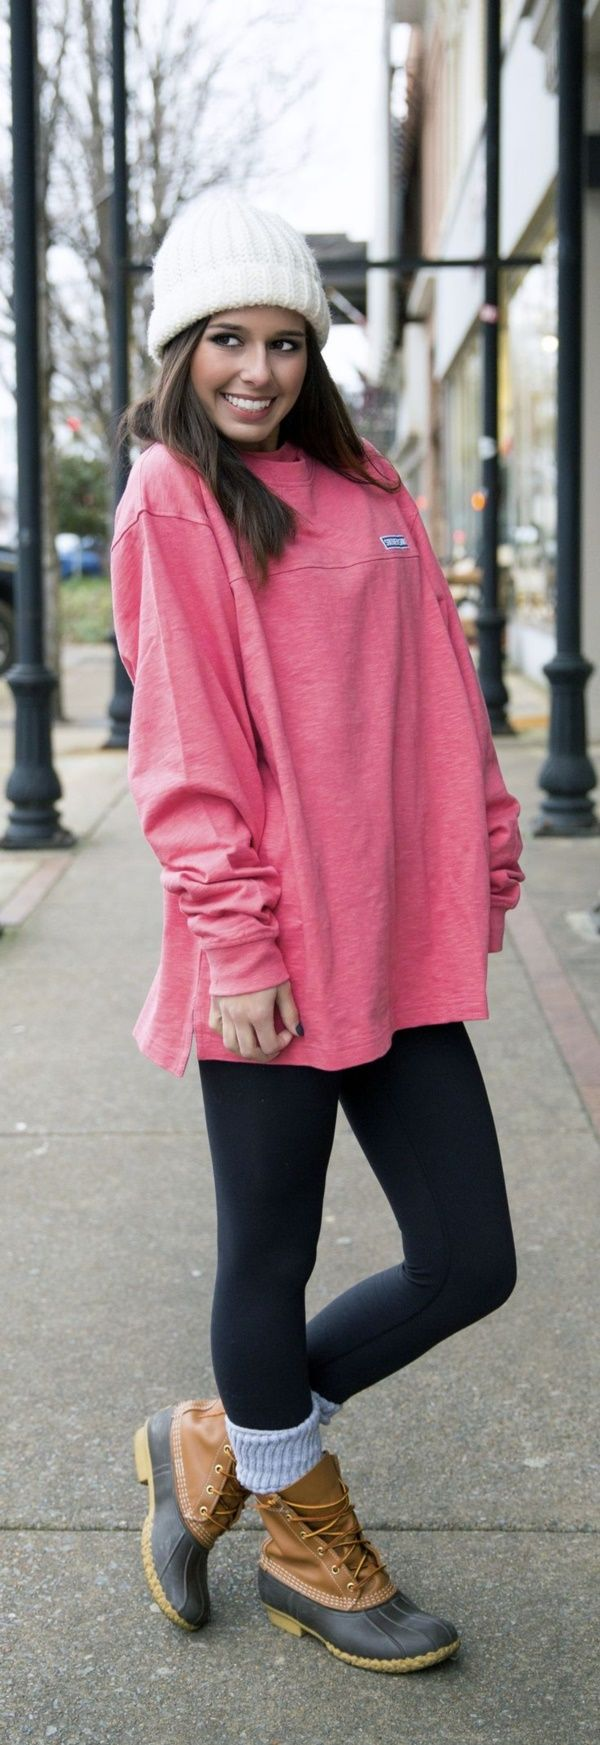 Best 25+ Comfy winter outfit ideas on Pinterest | High school ...